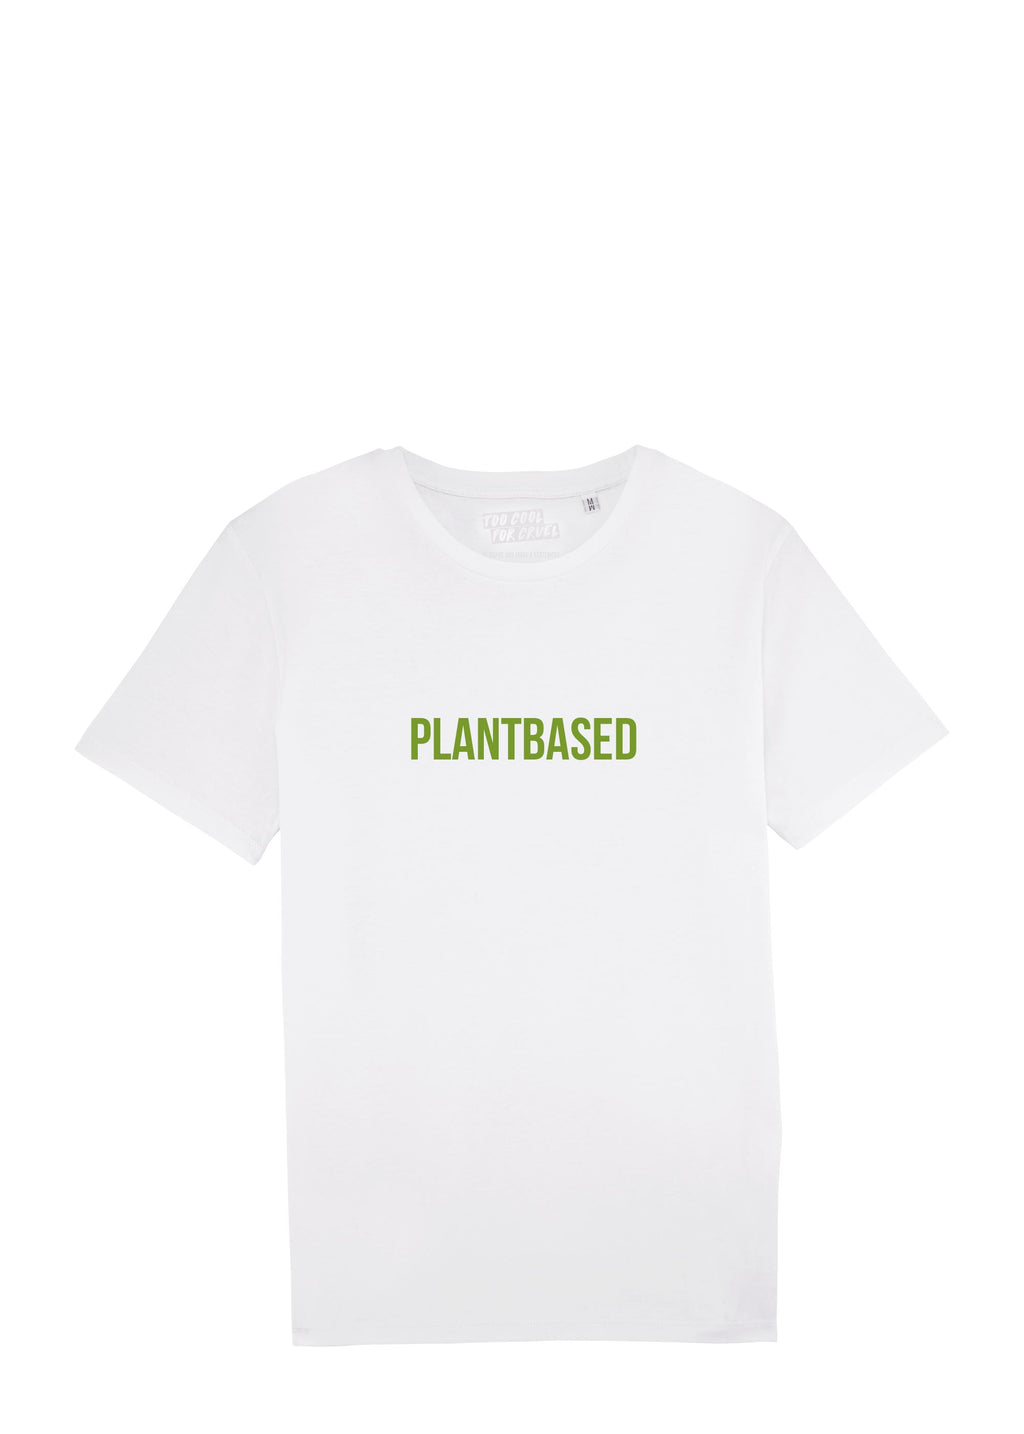 PLANTBASED SHIRT (unisex)